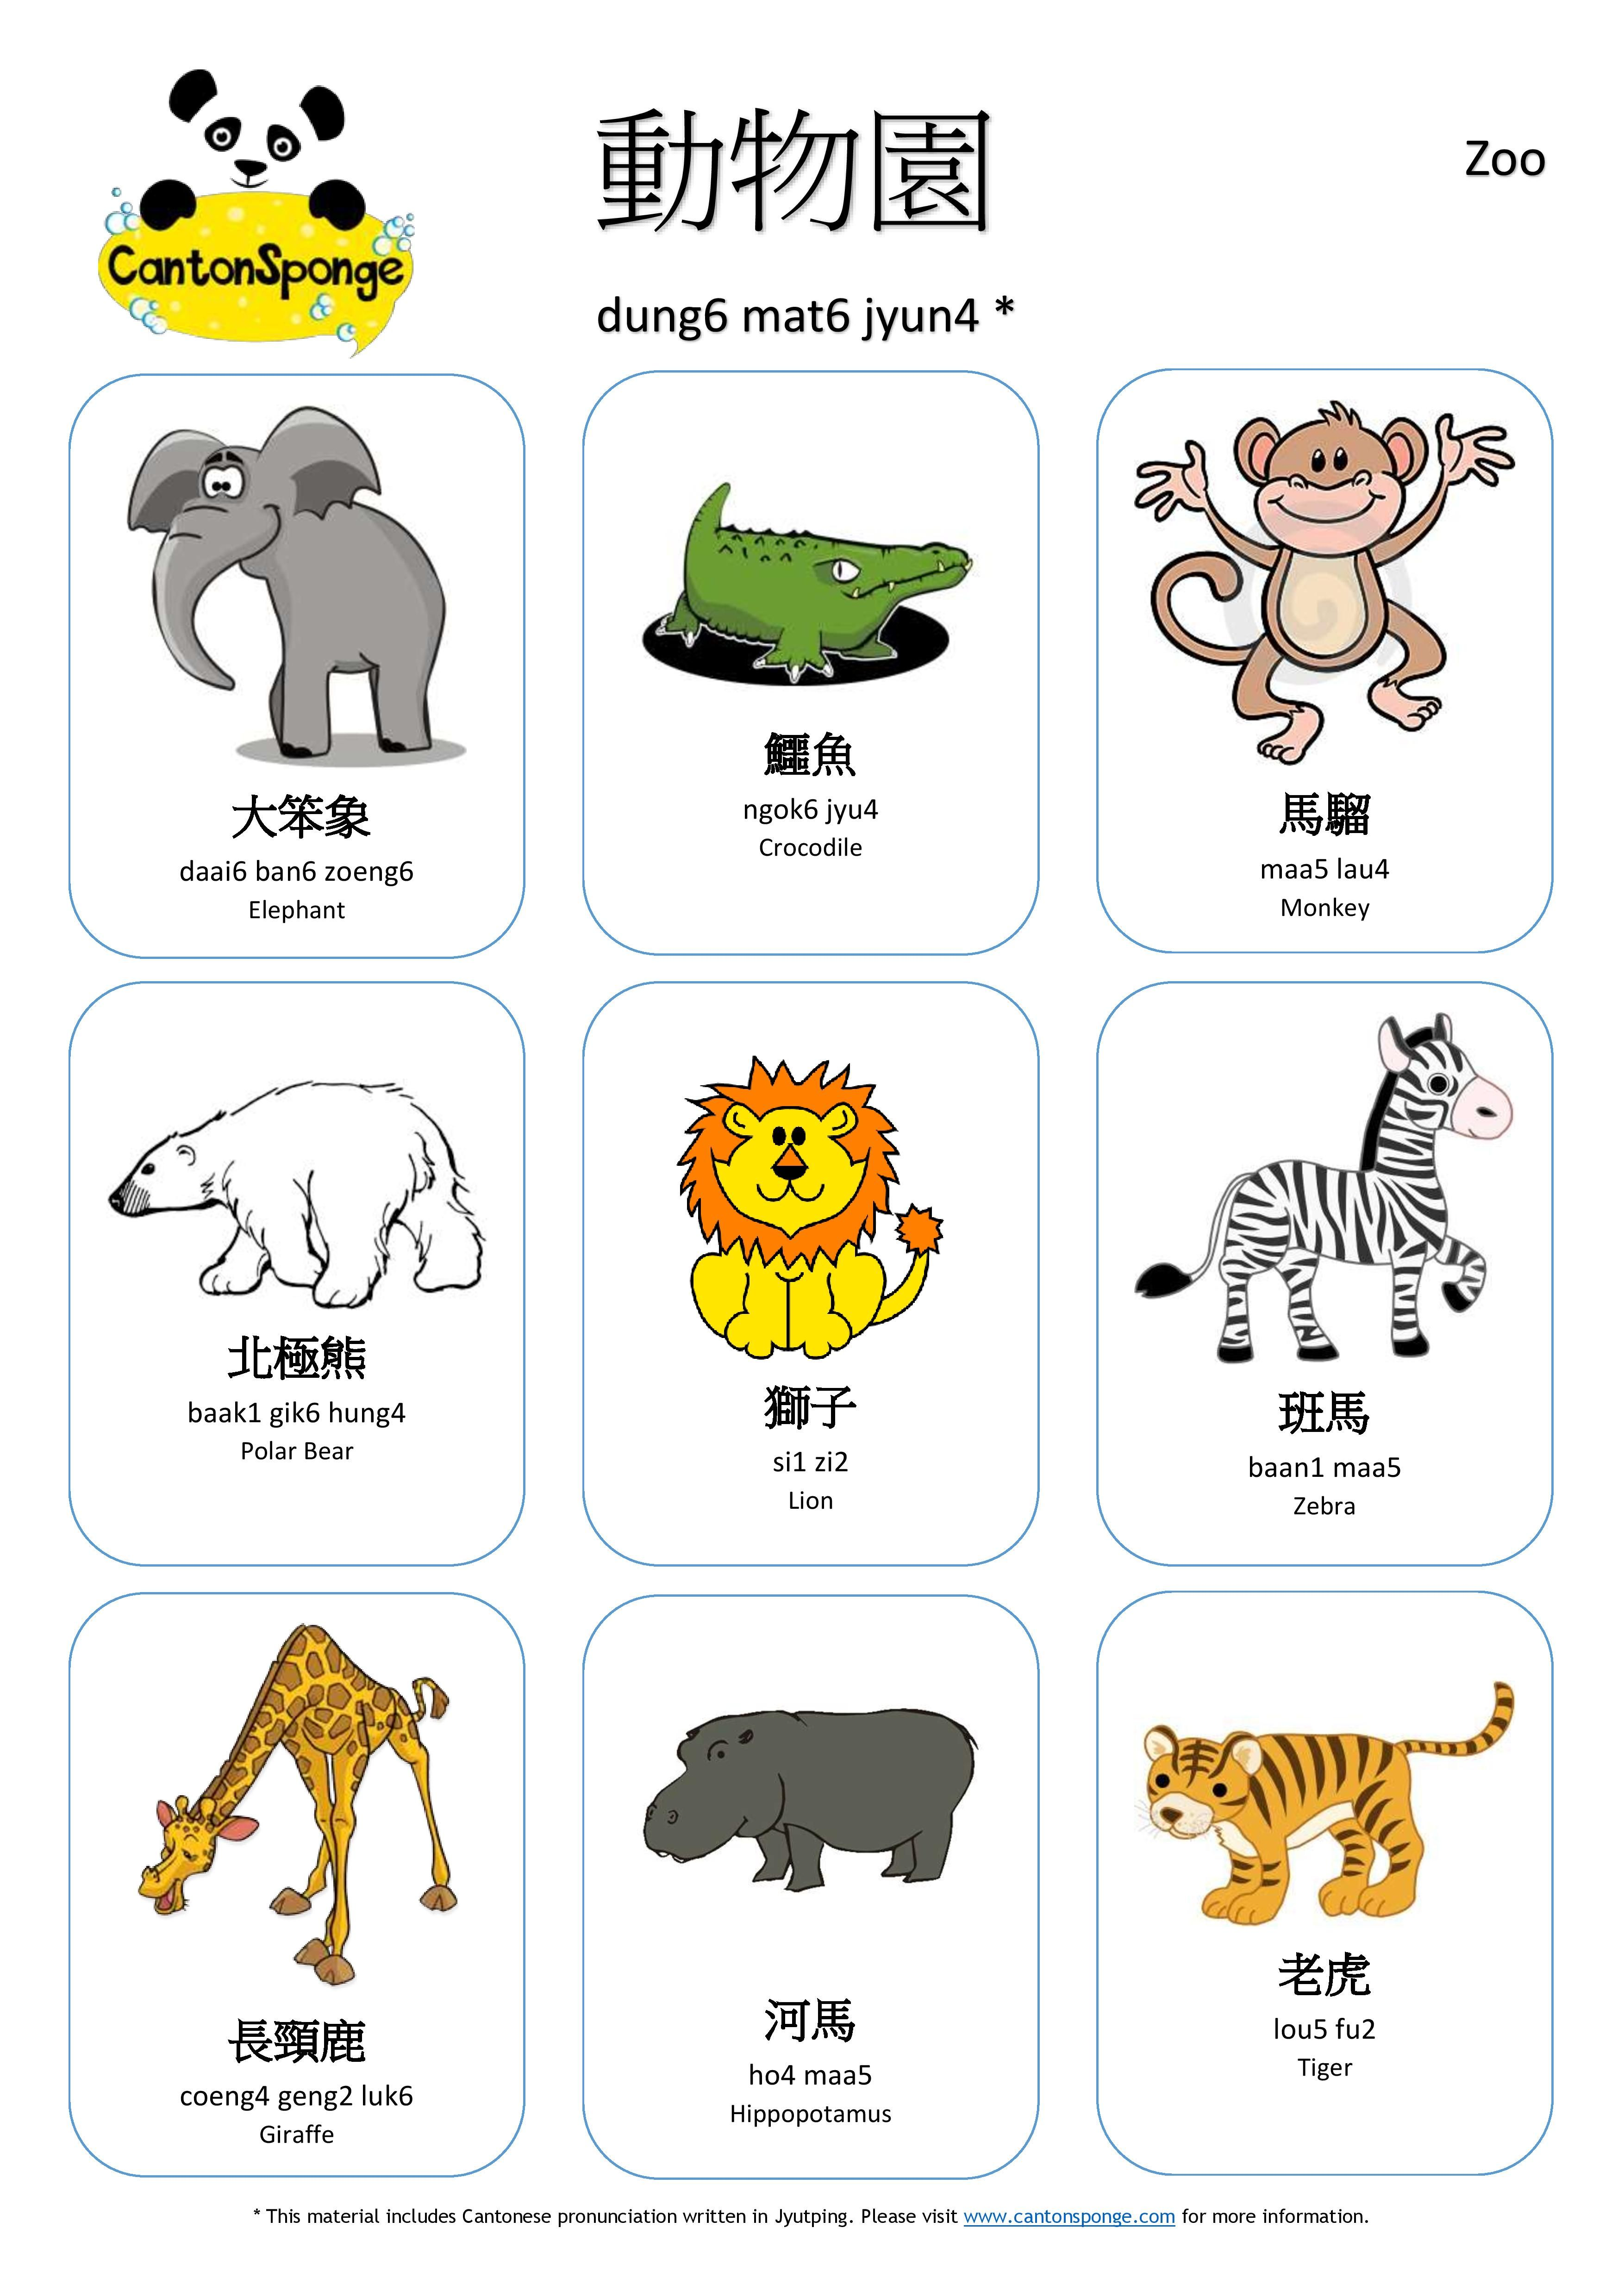 Bilingual (English - Chinese) Zoo Animals Poster with clear #Chinese characters and #Cantonese pronunciation. To learn more Cantonese: www.cantonsponge.com.